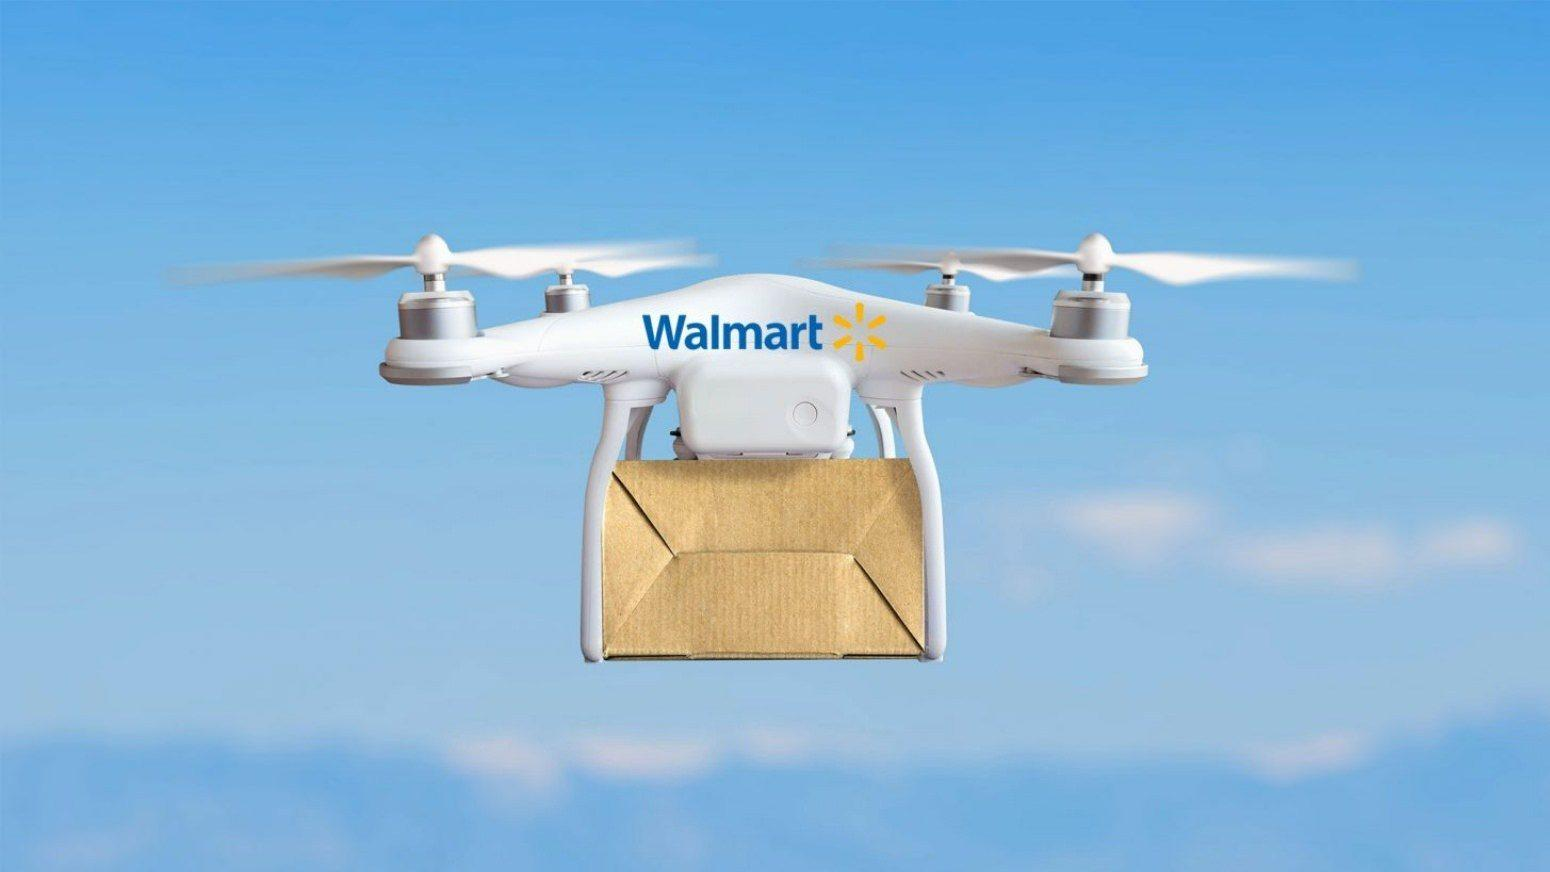 Walmart signs drone deals to keep up with Amazon  Thumbnail